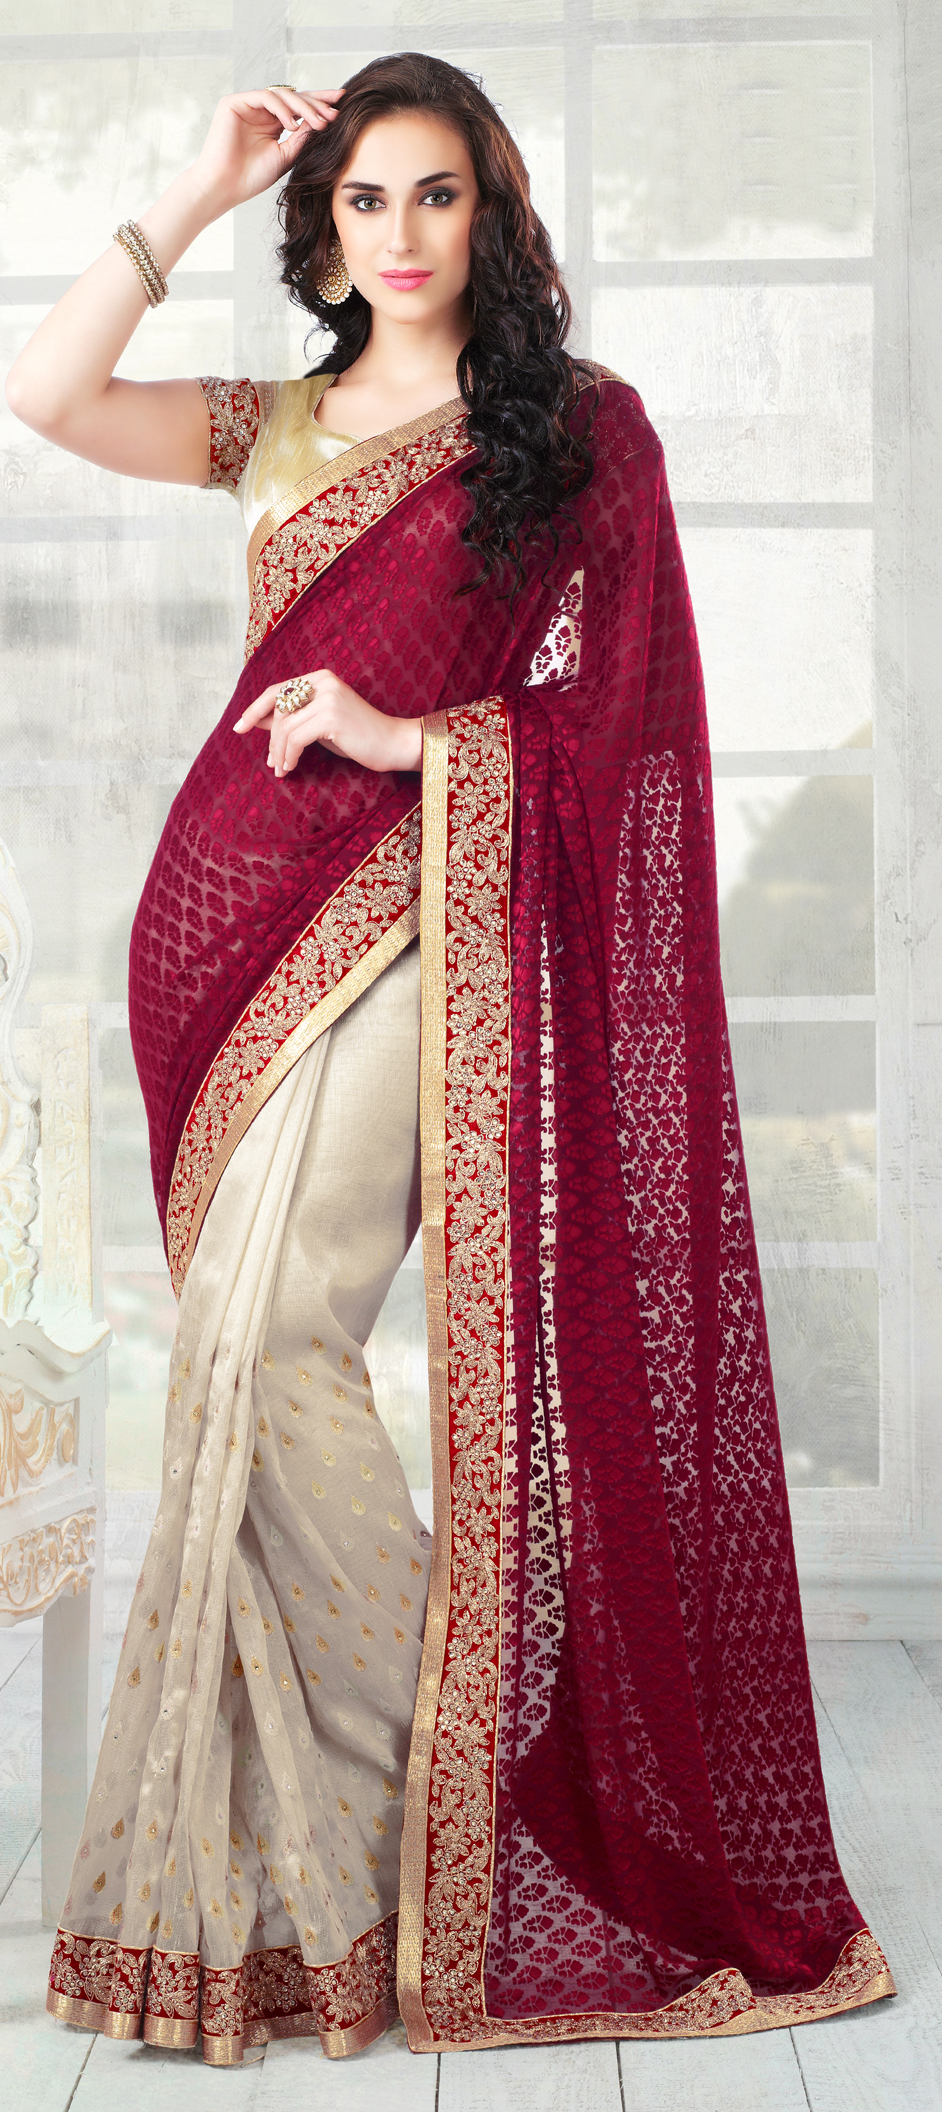 146716: Red and Maroon, Beige and Brown color family Saree with ...